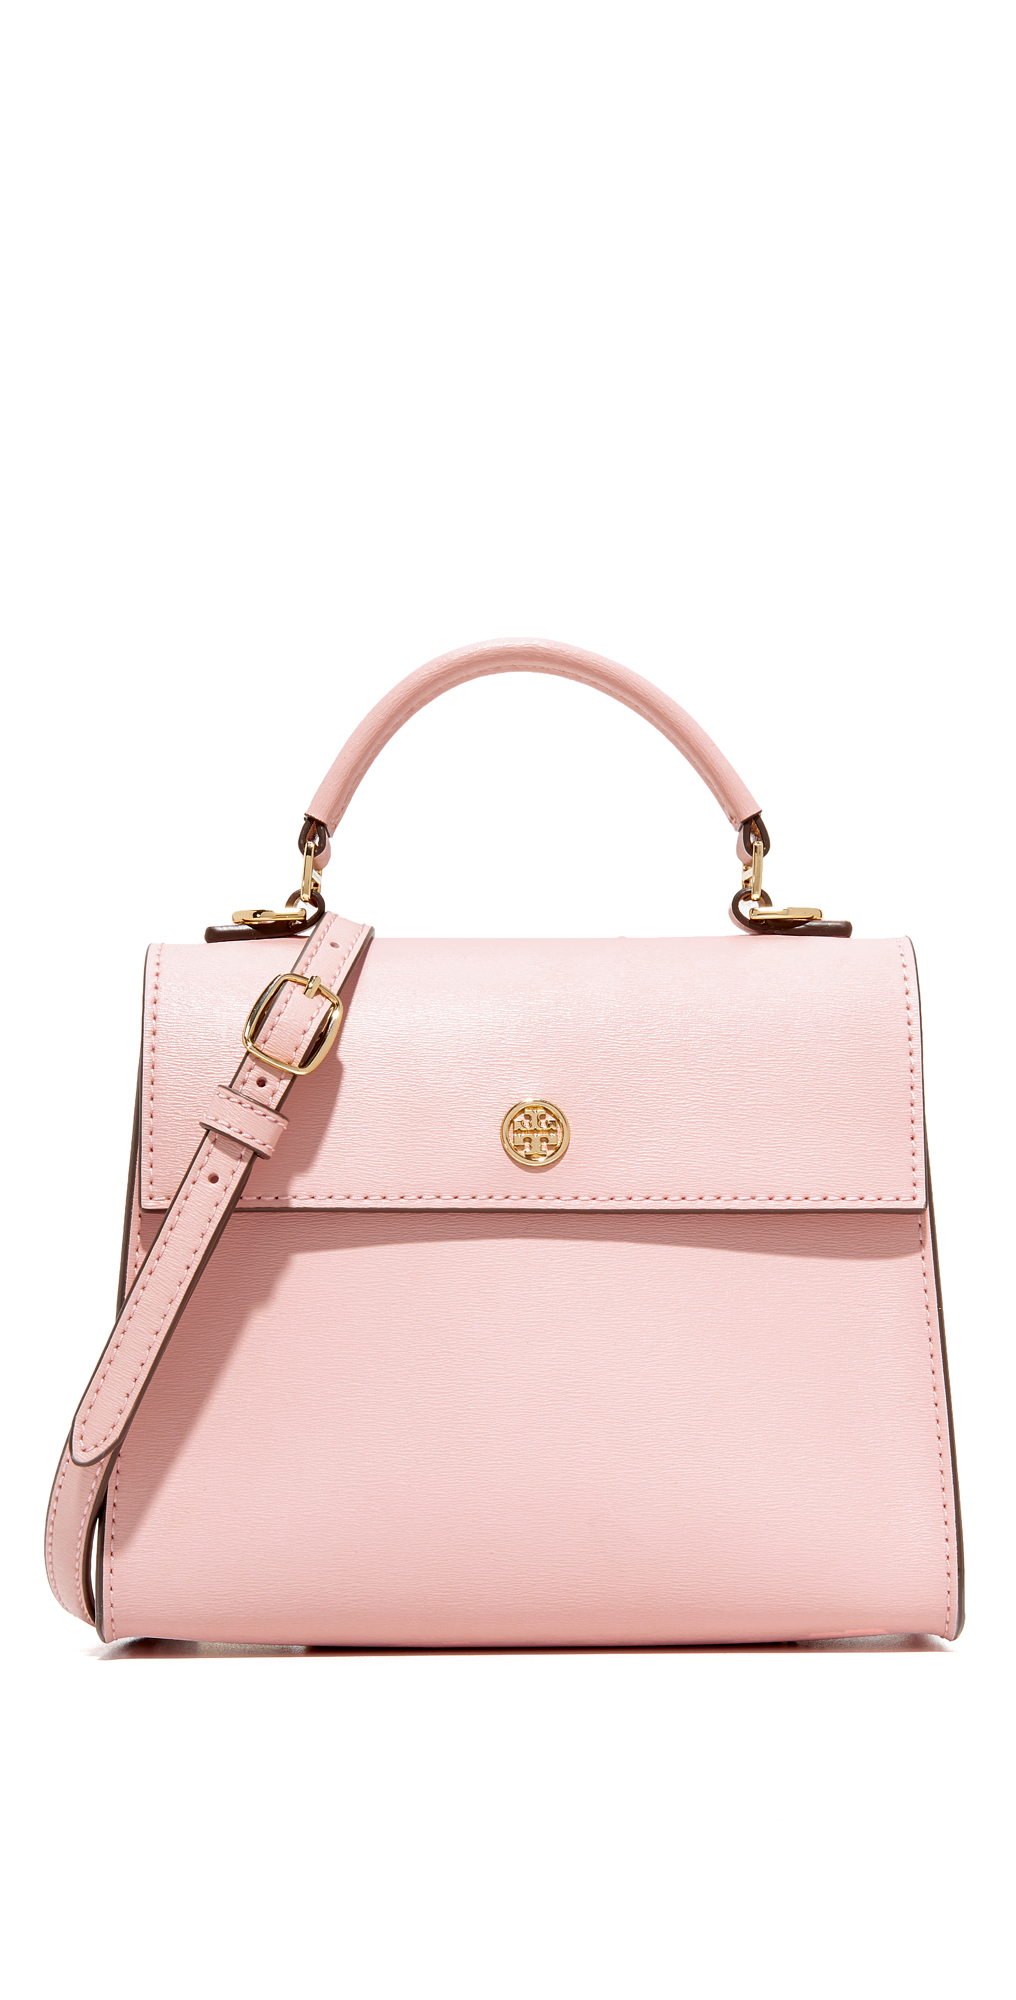 Parker Small Top Handle Satchel Tory Burch